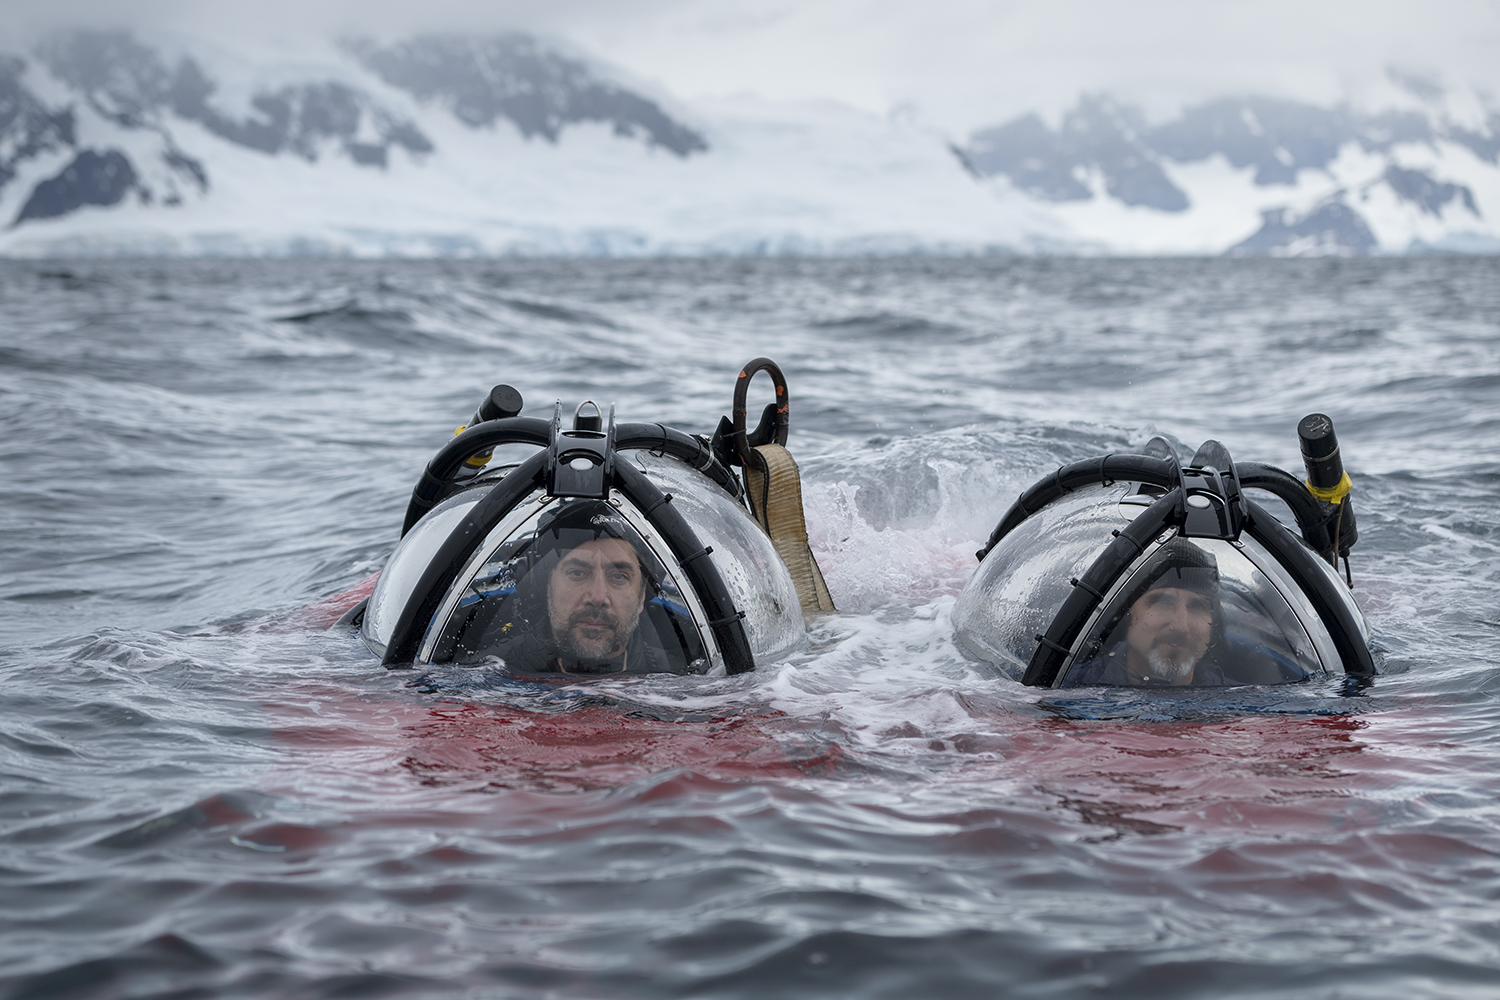 Actor and Antarctic ambassador Javier Bardem and submarine pilot John Hocevar coming up the the surface after exploring the Antarctic seafloor on around 270 meters depth in Charlotte Bay off the Gerlache Strait.